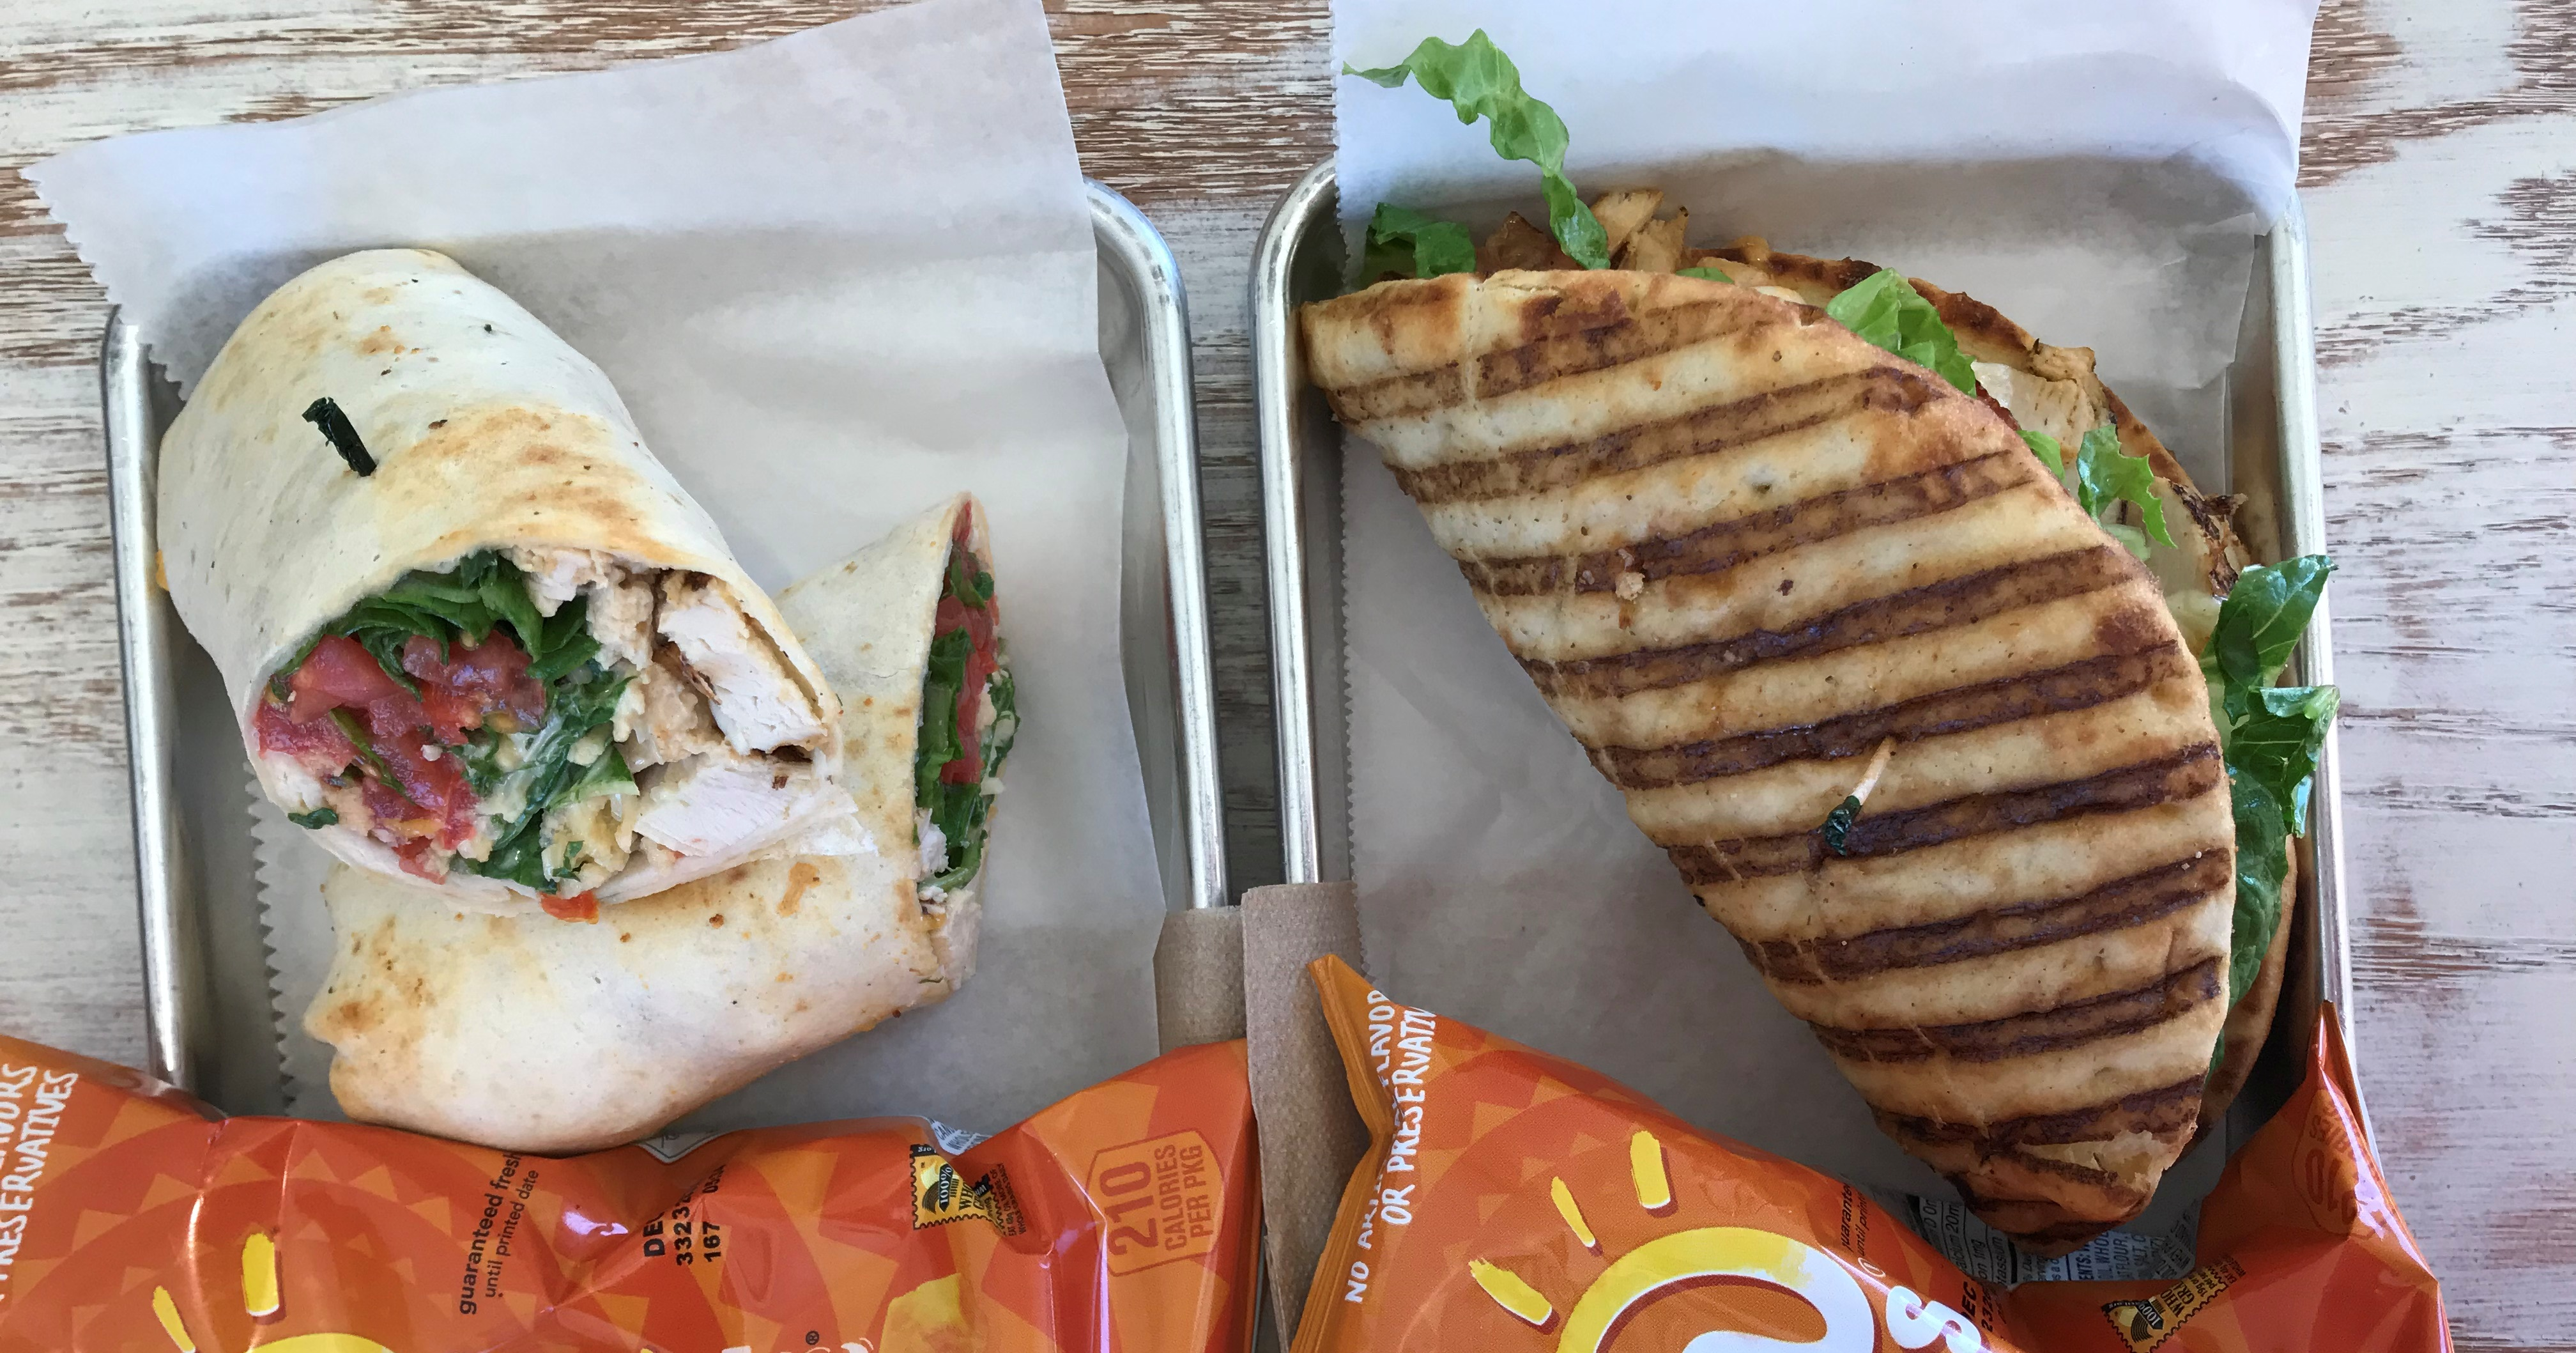 Tropical Smoothie Cafe: Fast Food We Can Get With